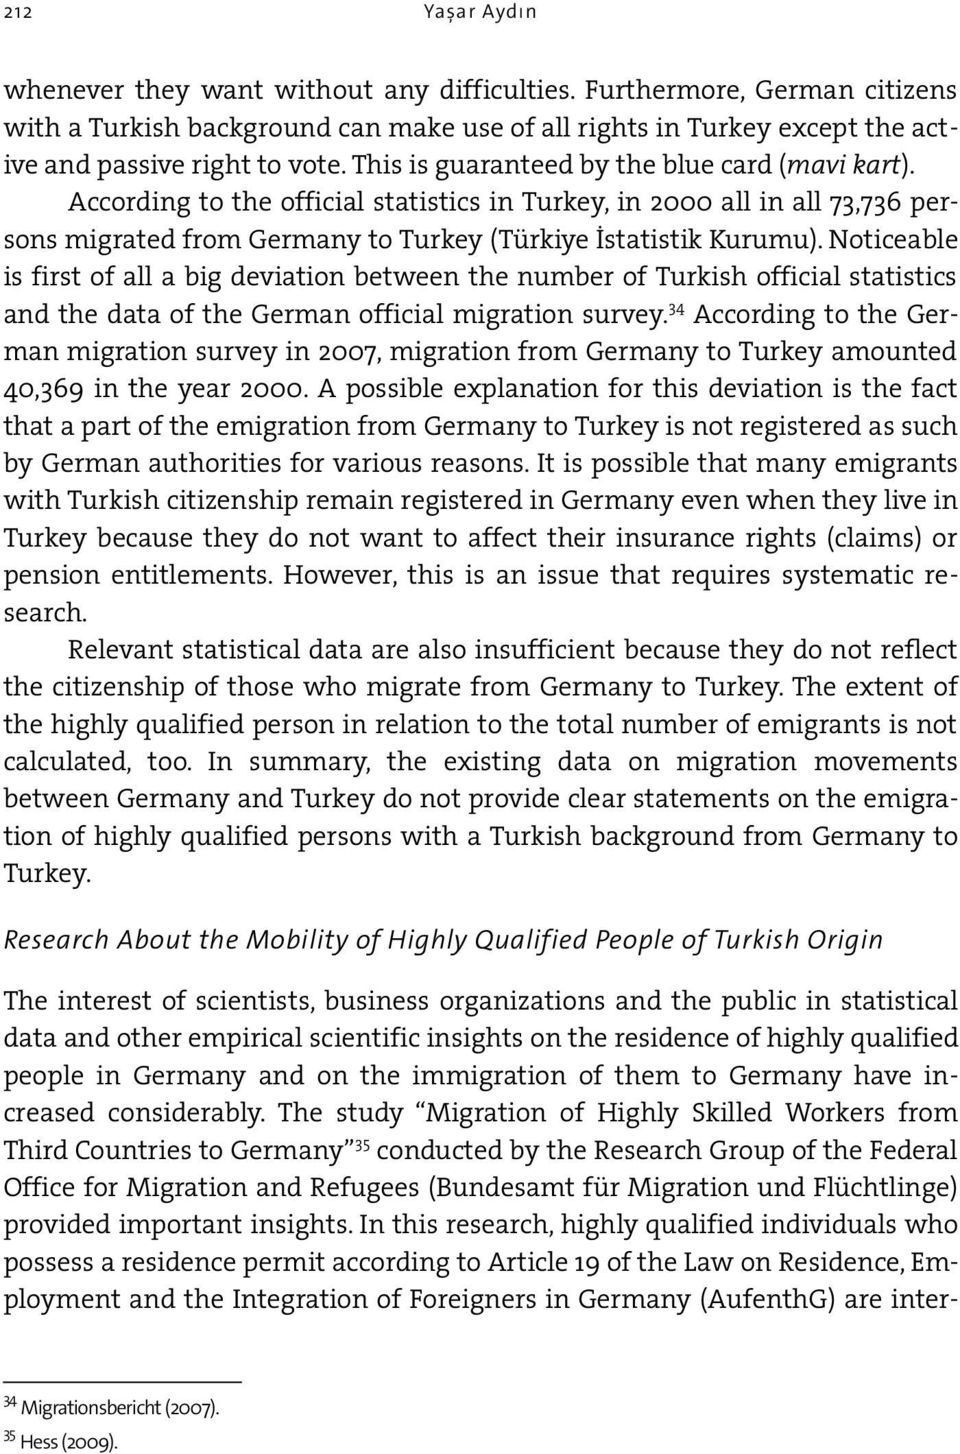 Noticeable is first of all a big deviation between the number of Turkish official statistics and the data of the German official migration survey.